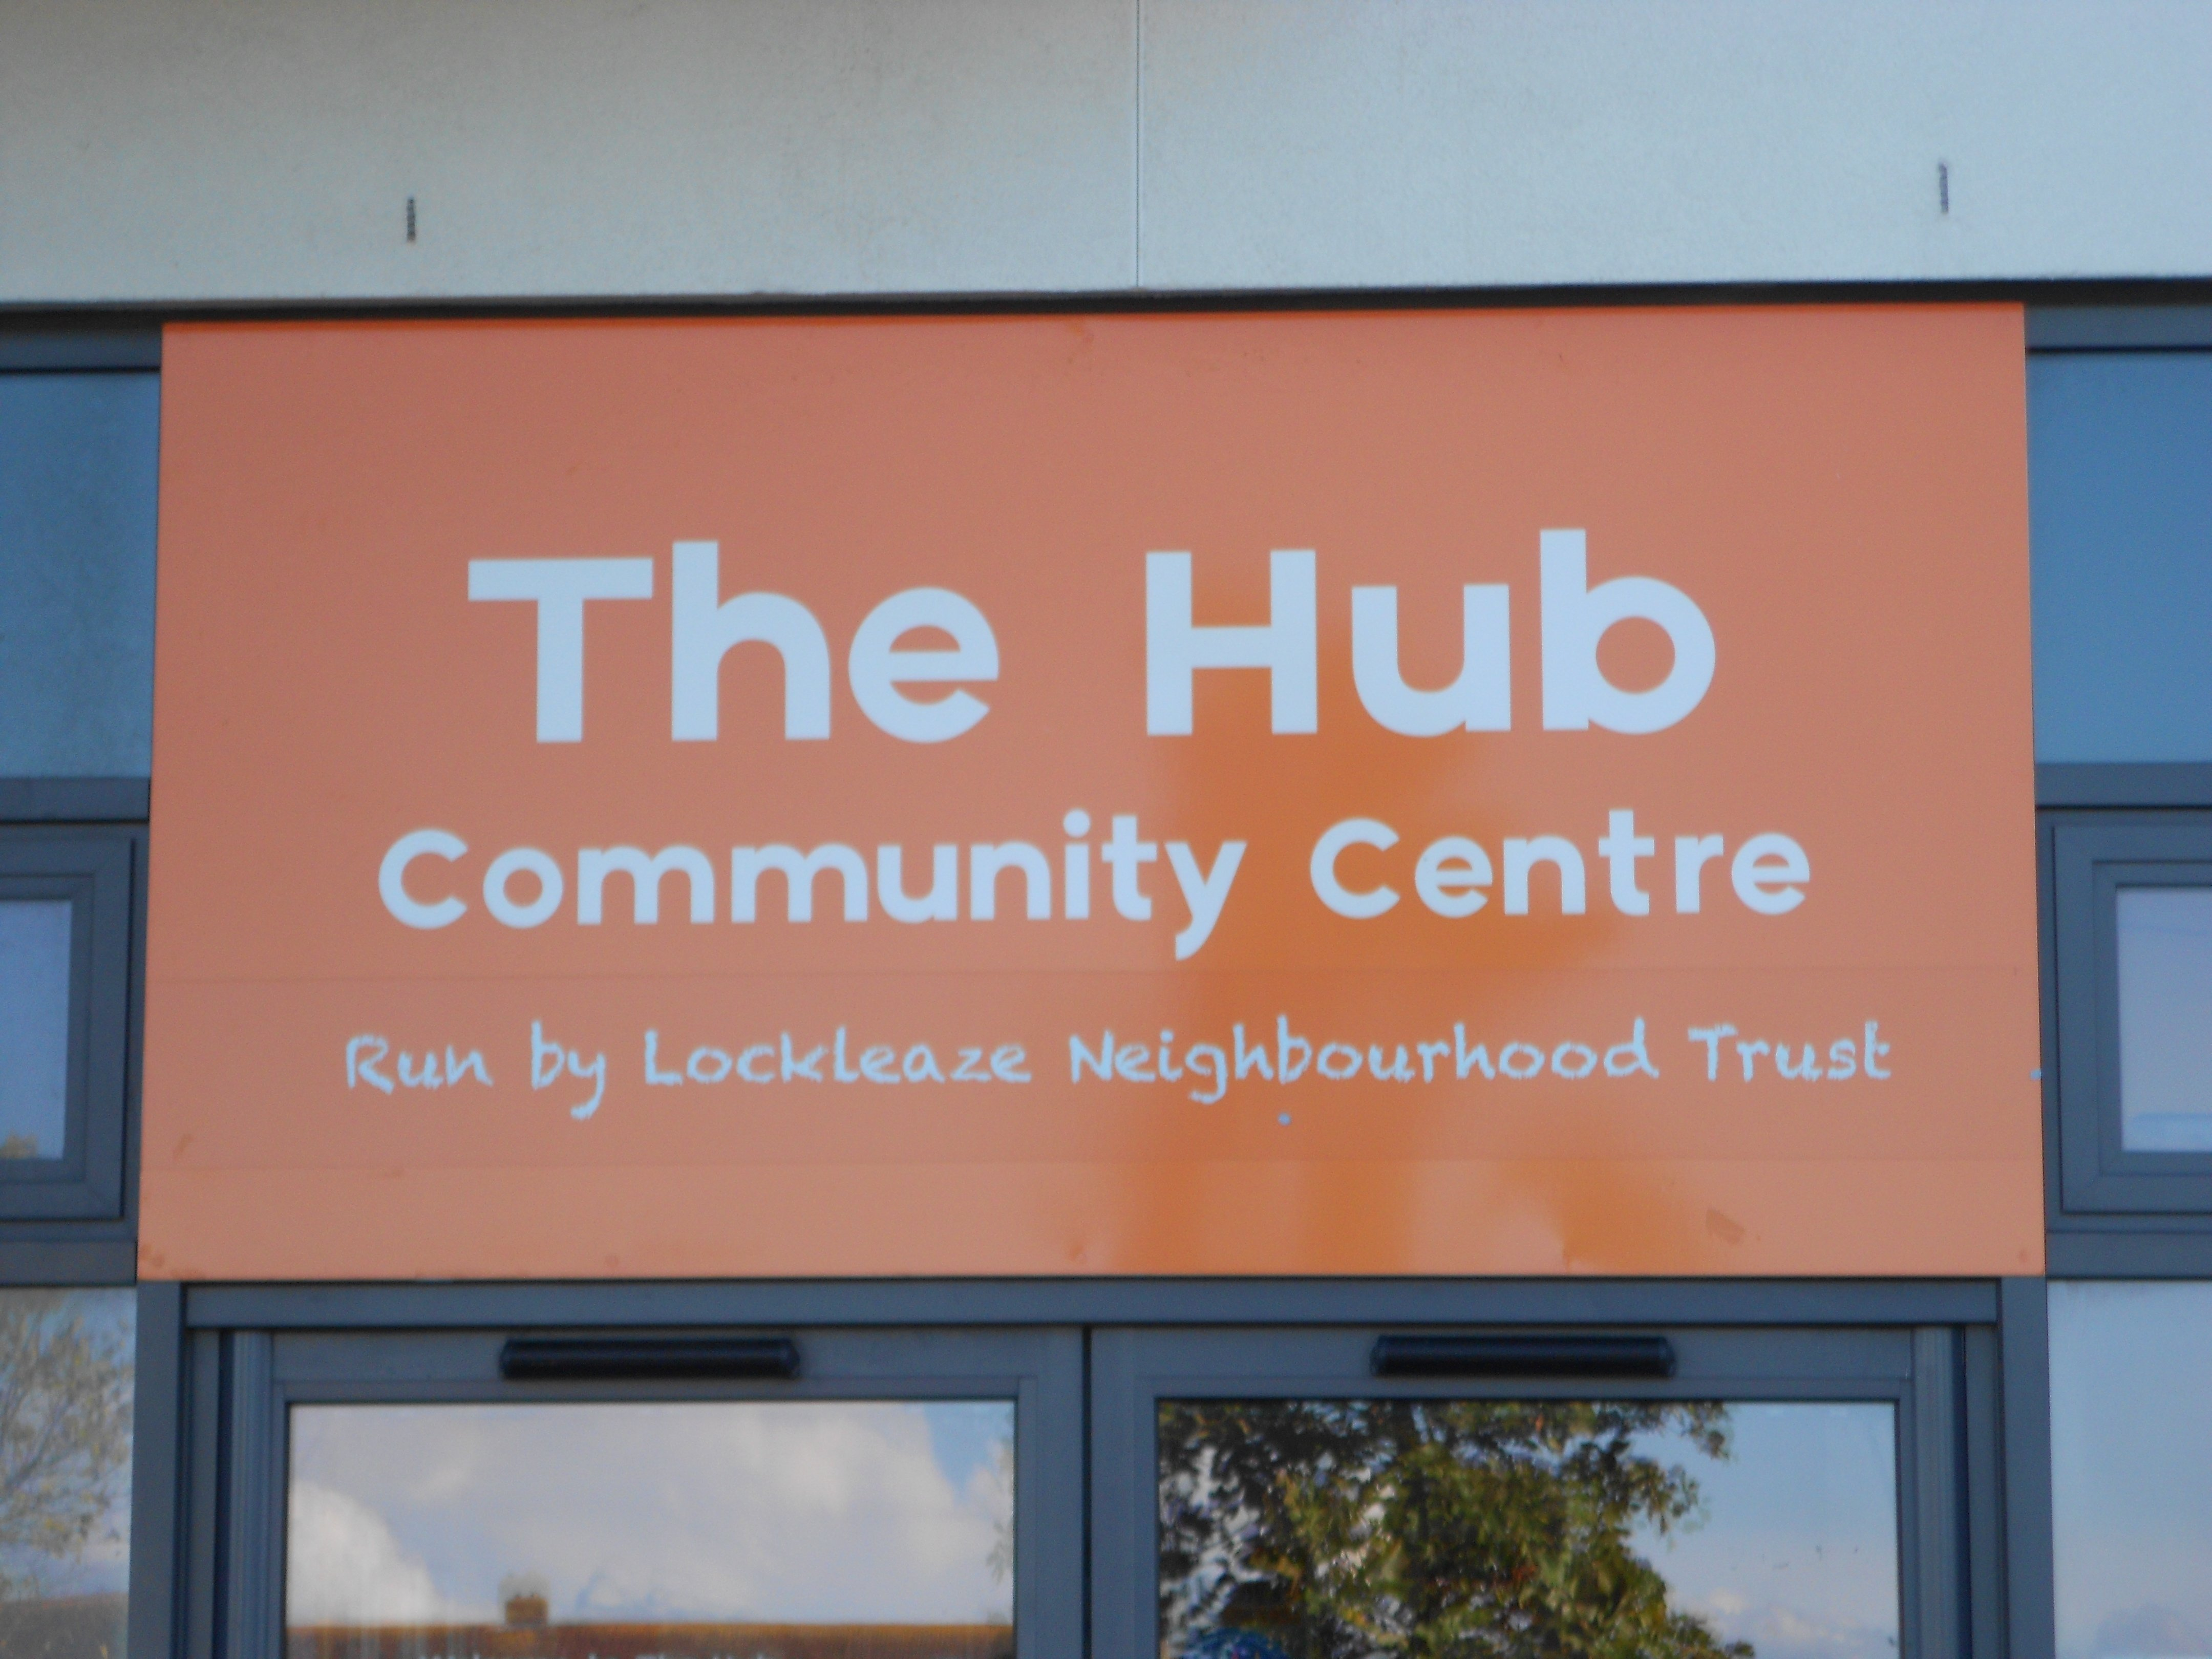 The Hub Community Centre sign